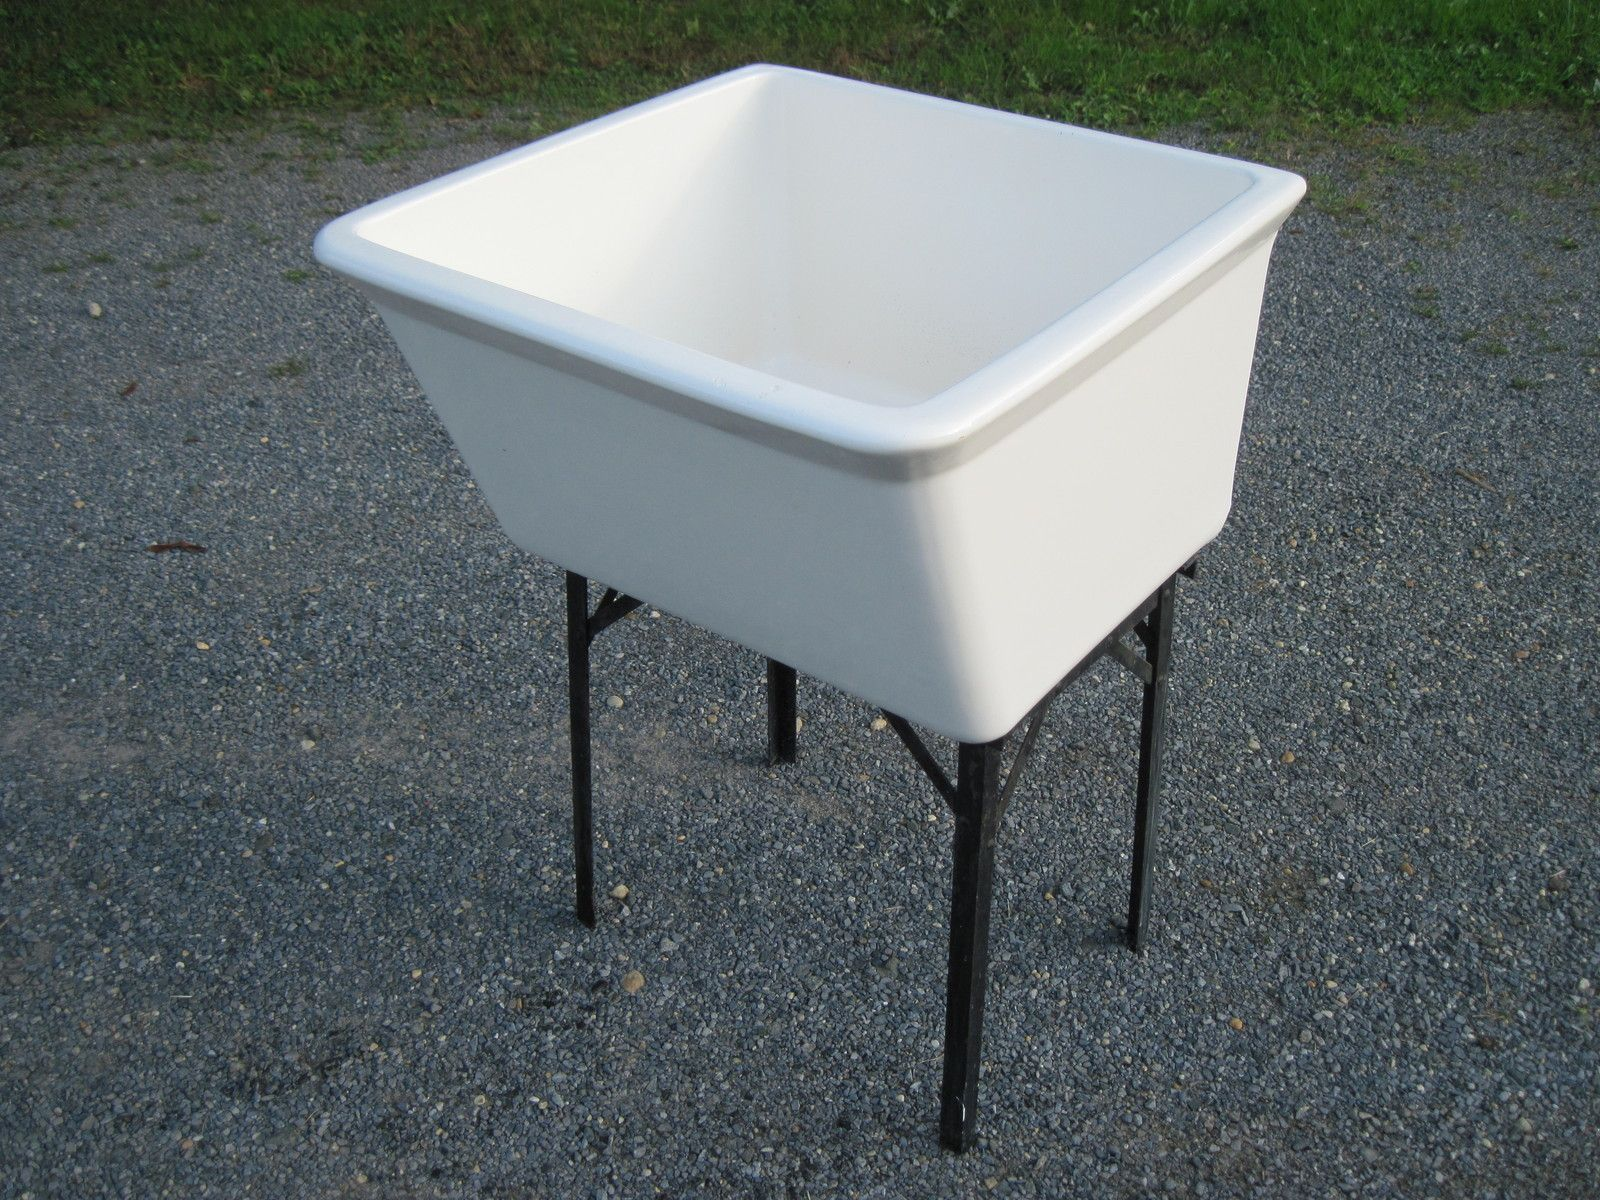 High Quality Laundry: Antique Vintage U0027Fordsu0027 Porcelain Utility Sink 1960u0027s | EBay